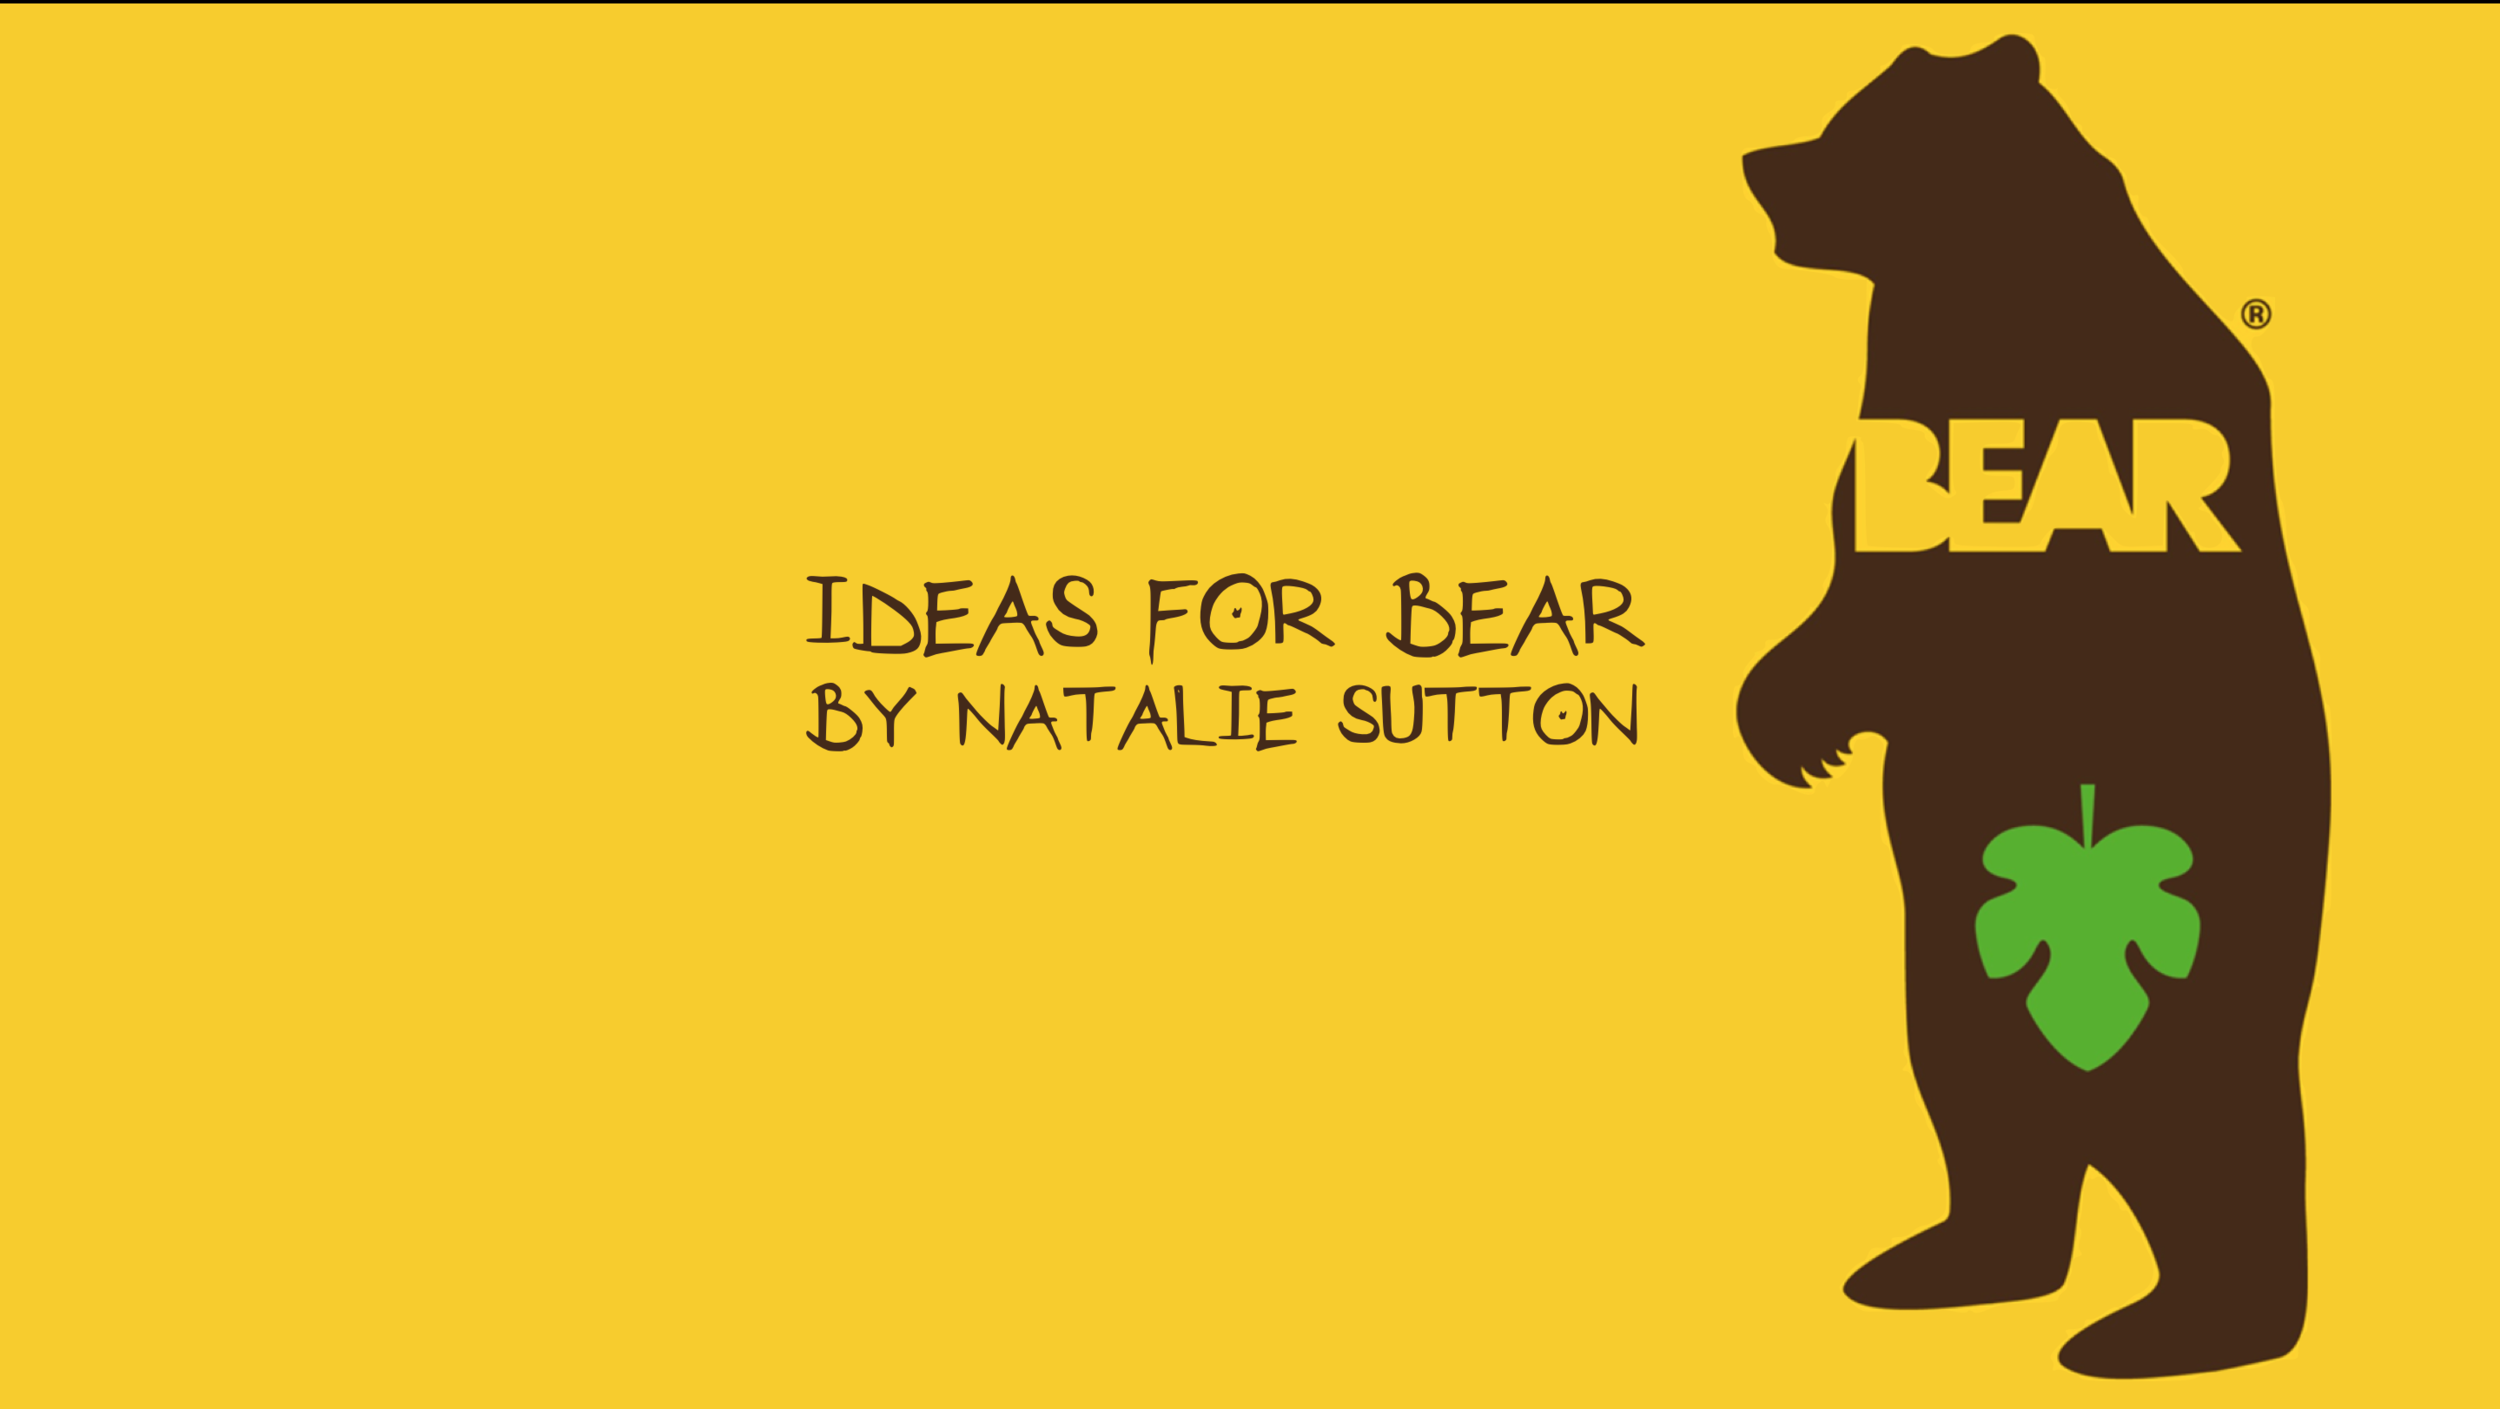 Natalie Palmer Sutton | hand illustrated ideas for Bear Nibbles 29.png